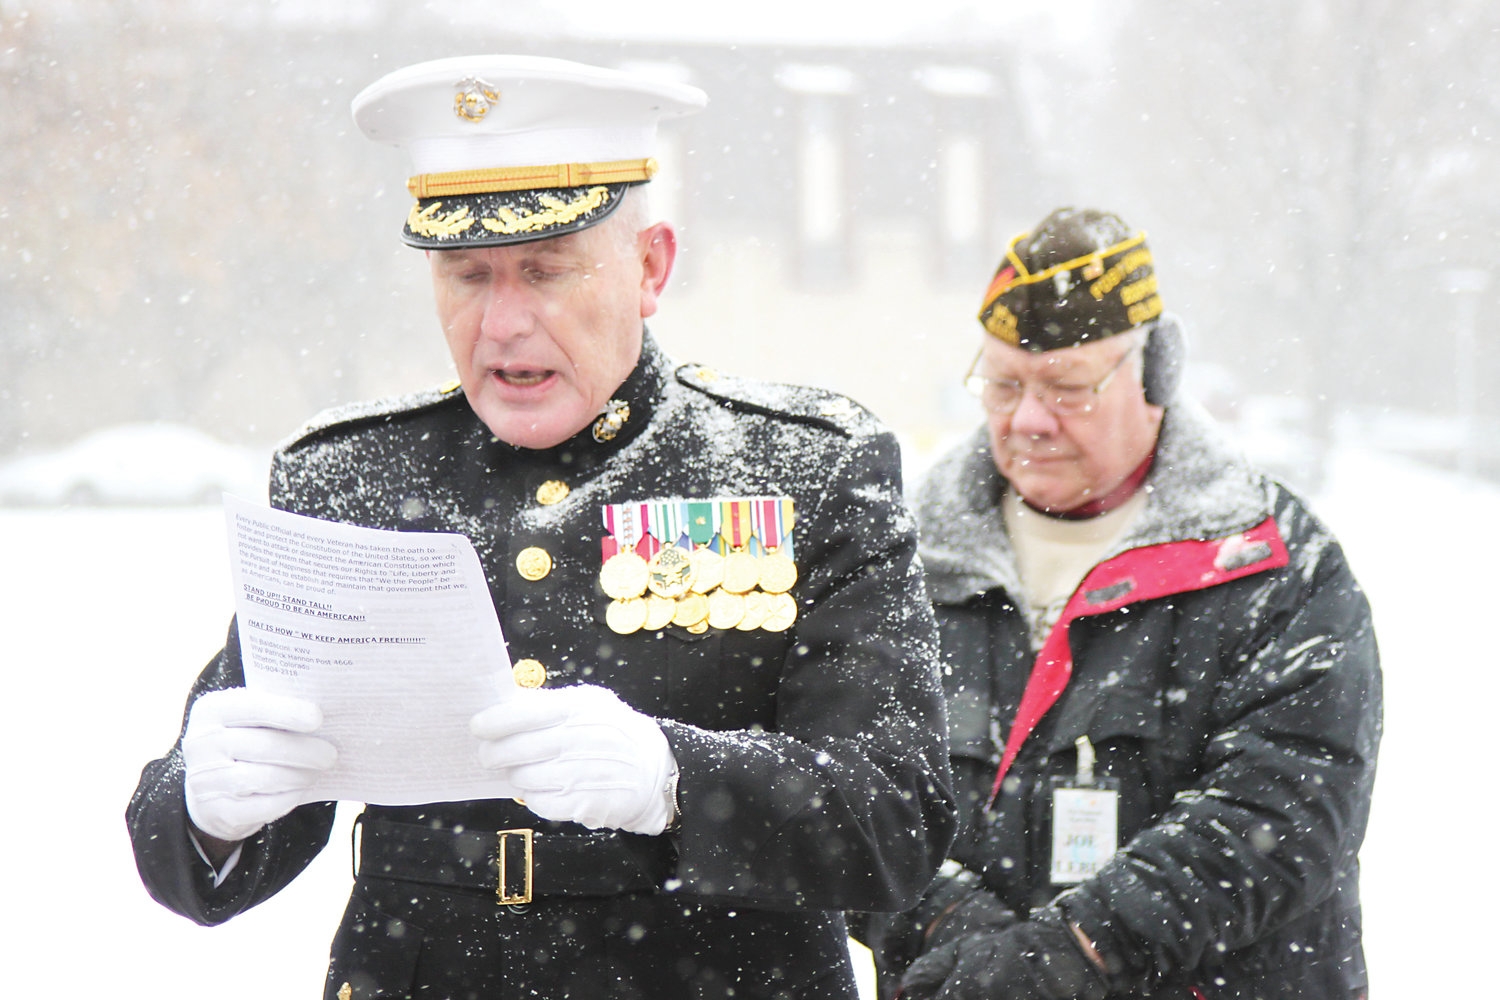 Retired Marine Col. Richard Swedberg, left, reads prepared remarks beside Littleton VFW Post Cmdr. Joe Leber.